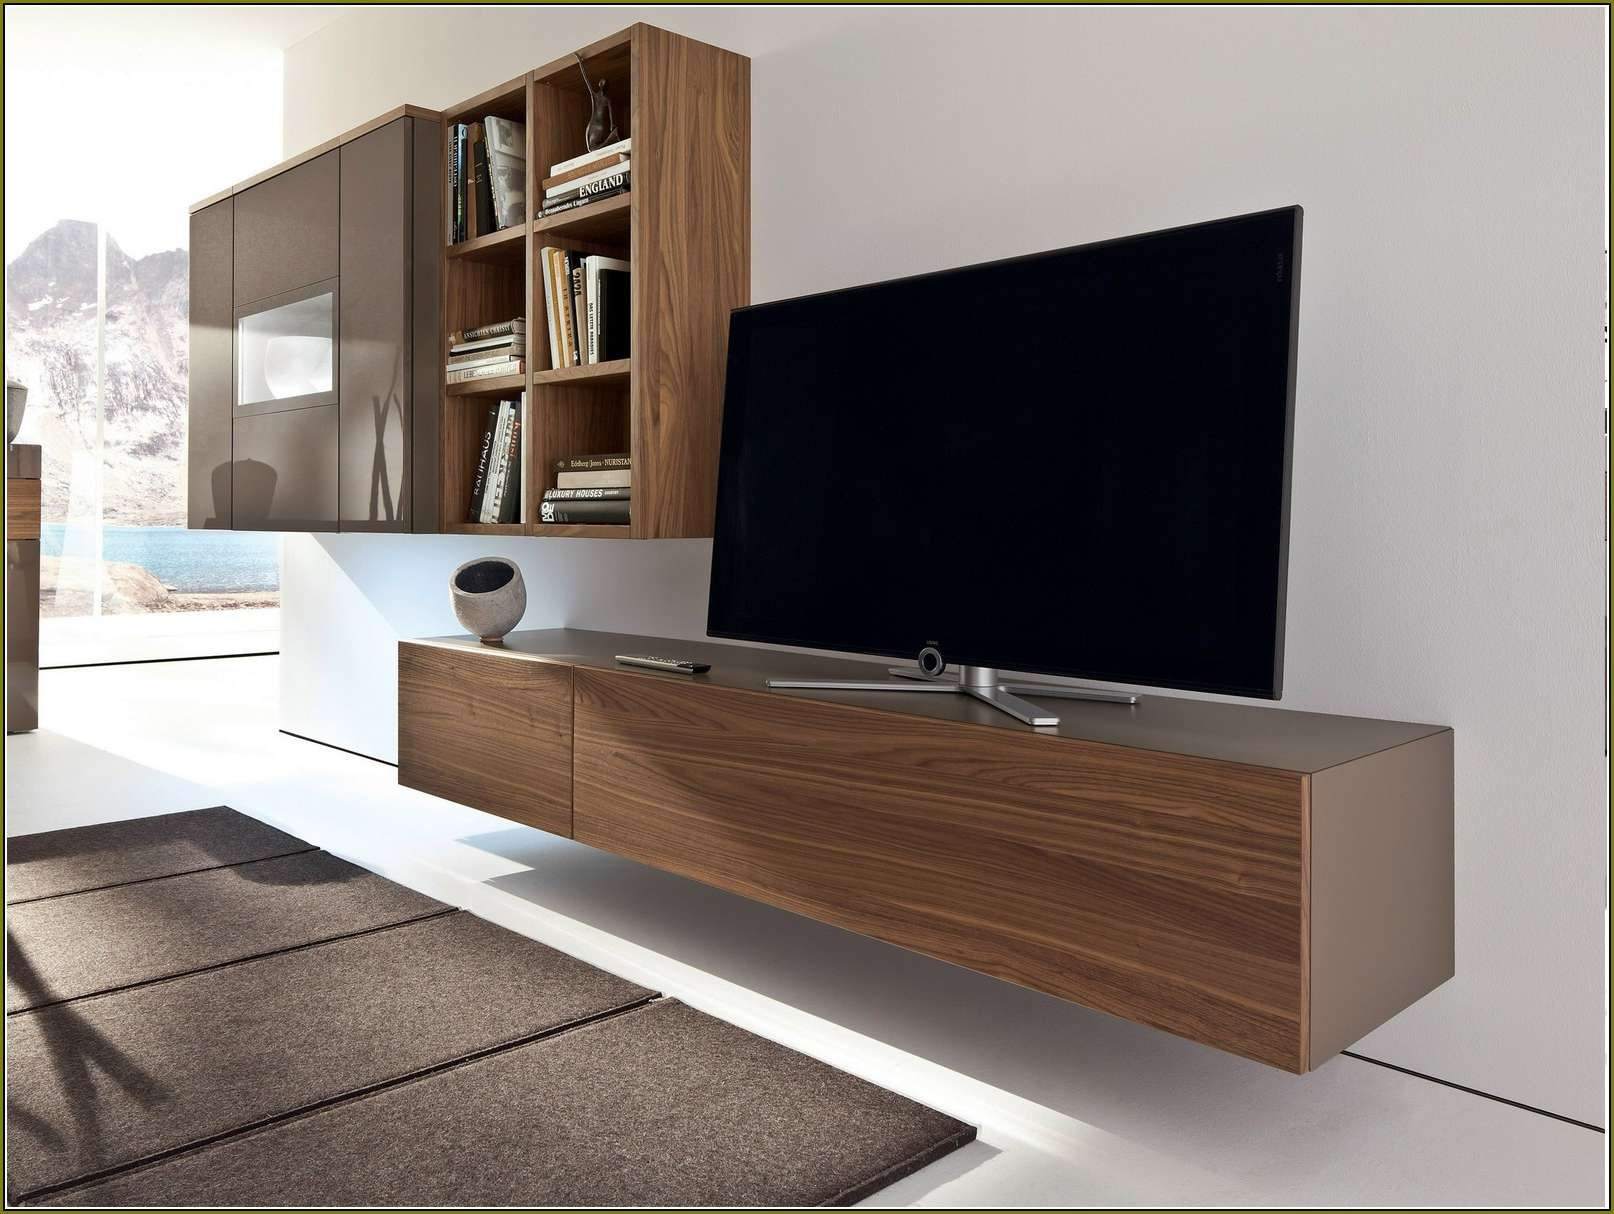 Indian Rosewood Wall Mounted Tv Cabinet With Sliding Door Panel With Regard To Wall Mounted Under Tv Cabinets (View 11 of 20)